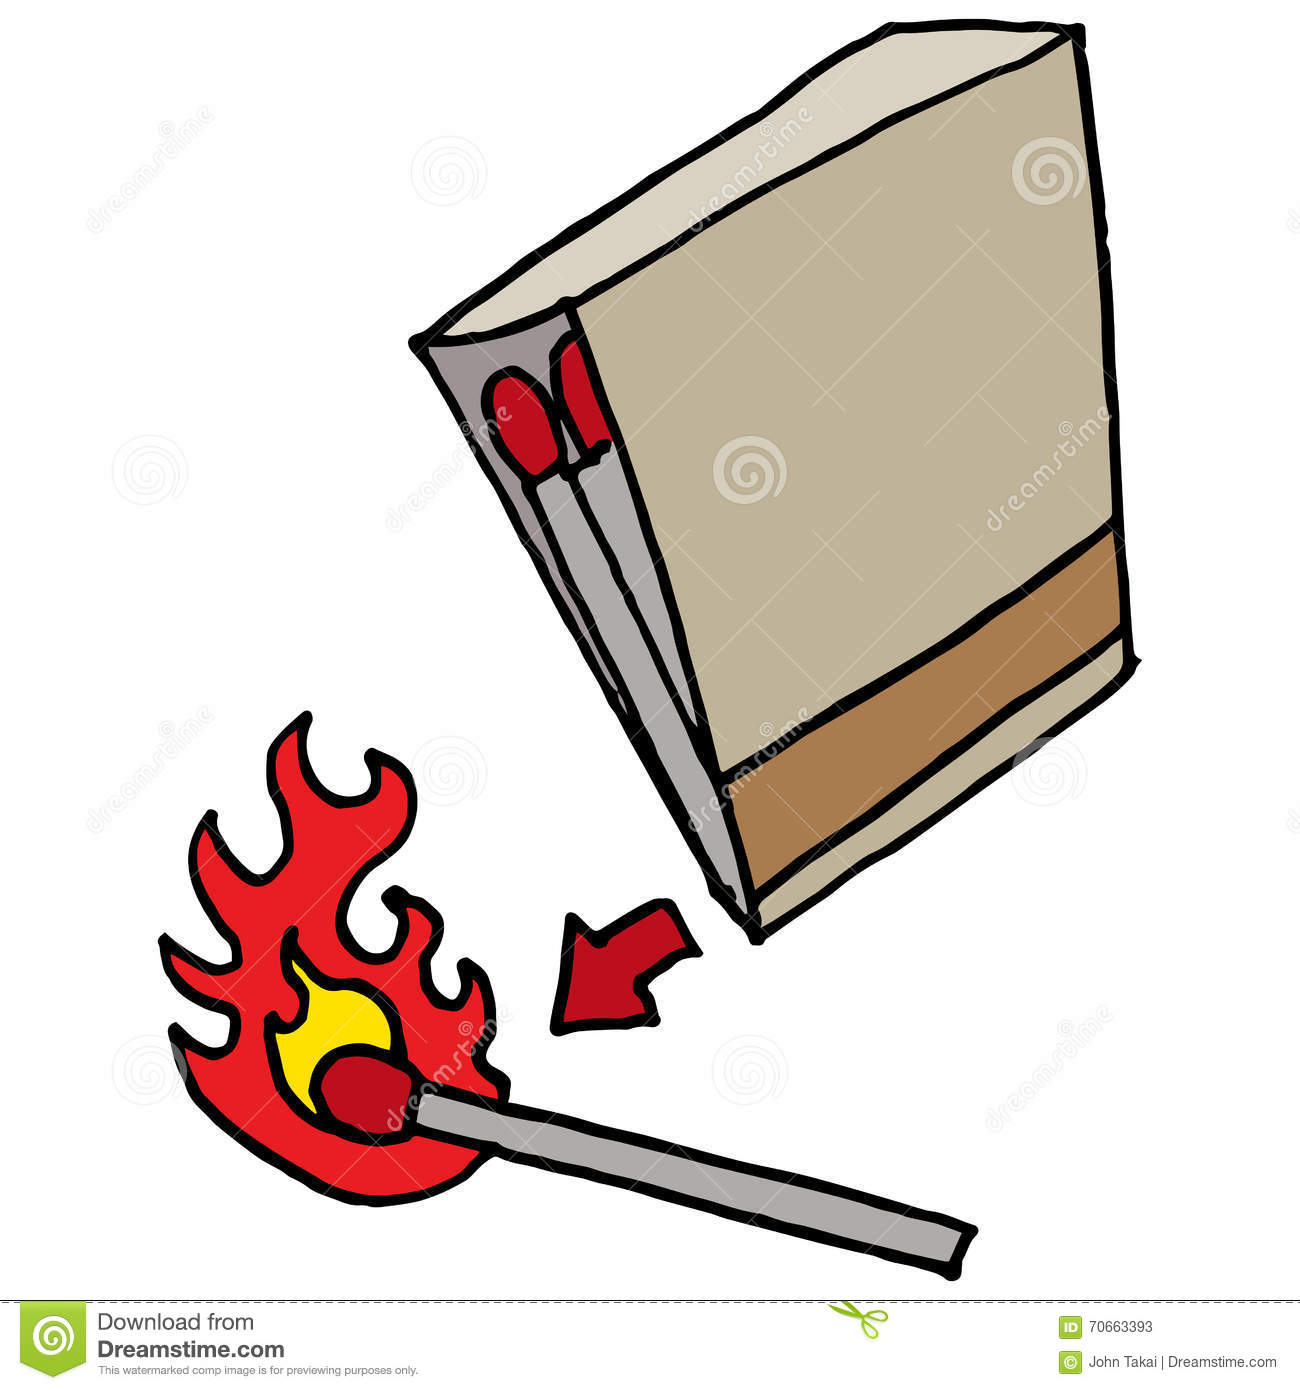 Lighting A Match On A Matchbook Stock Vector - Illustration of ... for Matches Clip Art  156eri